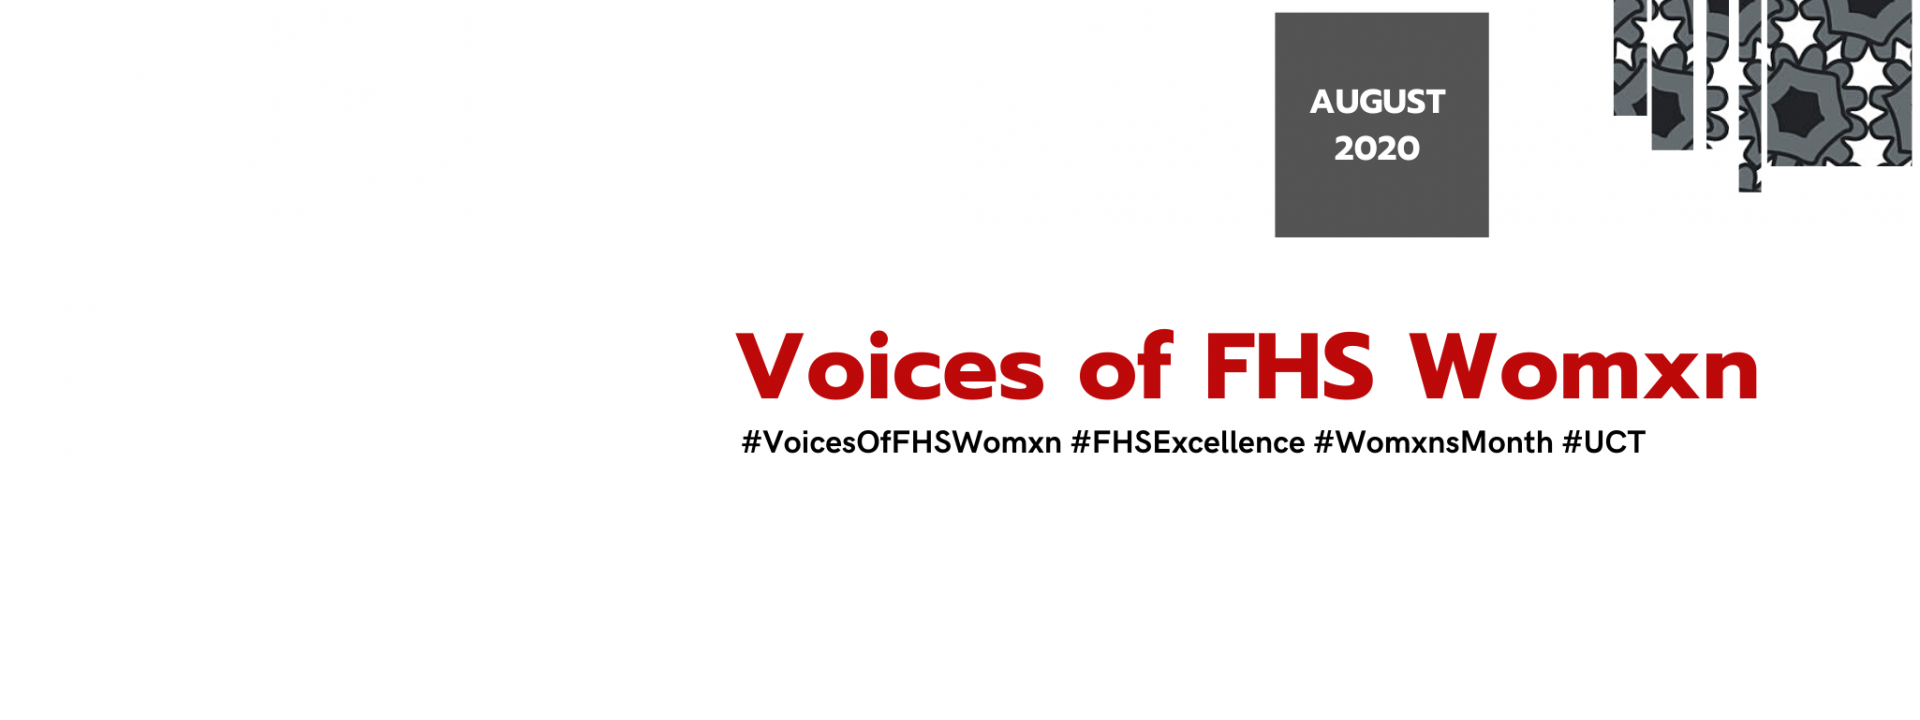 Voices of FHS Womxn